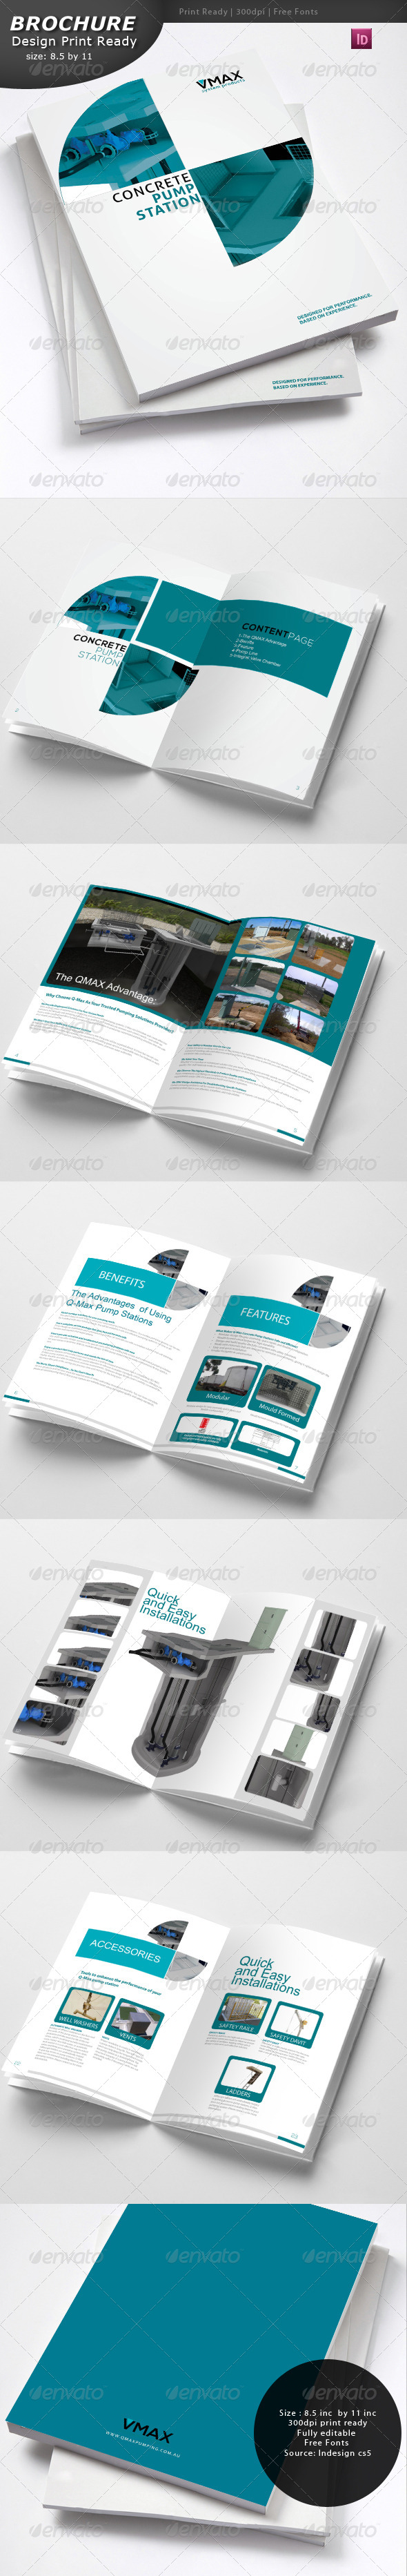 GraphicRiver Brochure Design 4467008